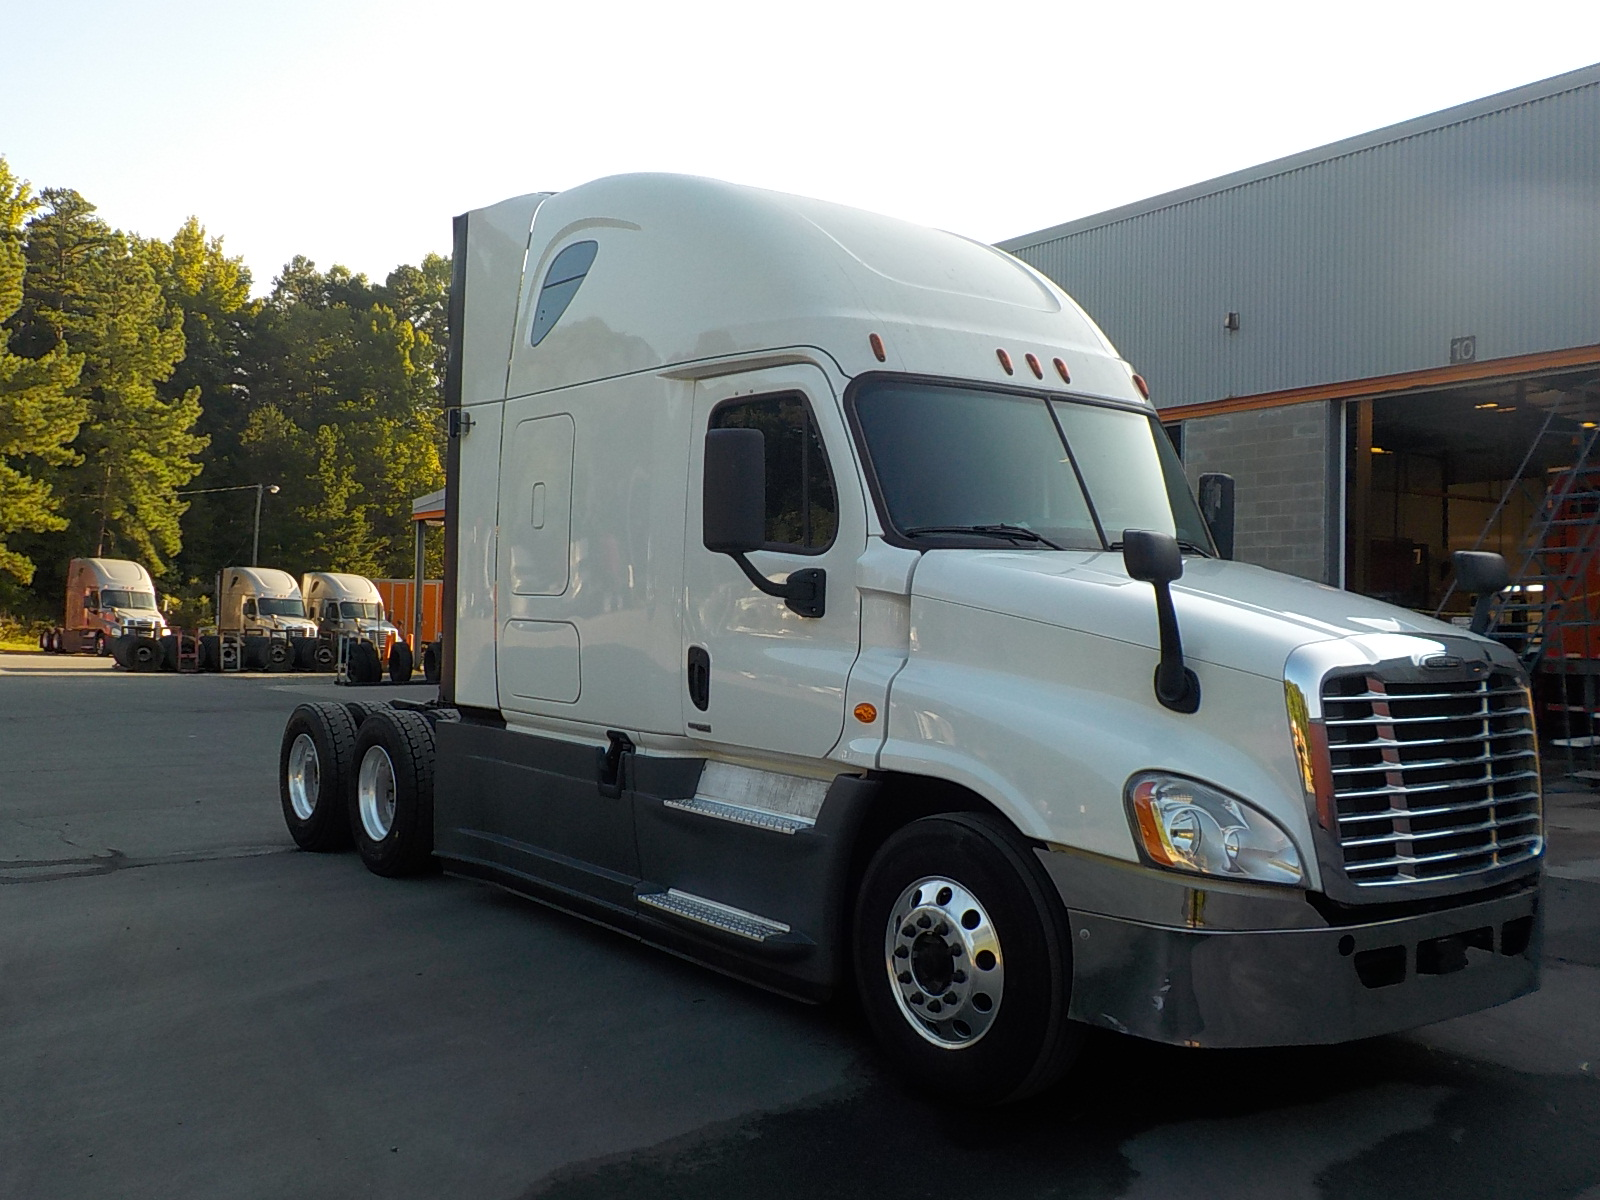 USED 2016 FREIGHTLINER CASCADIA DAYCAB TRUCK #134479